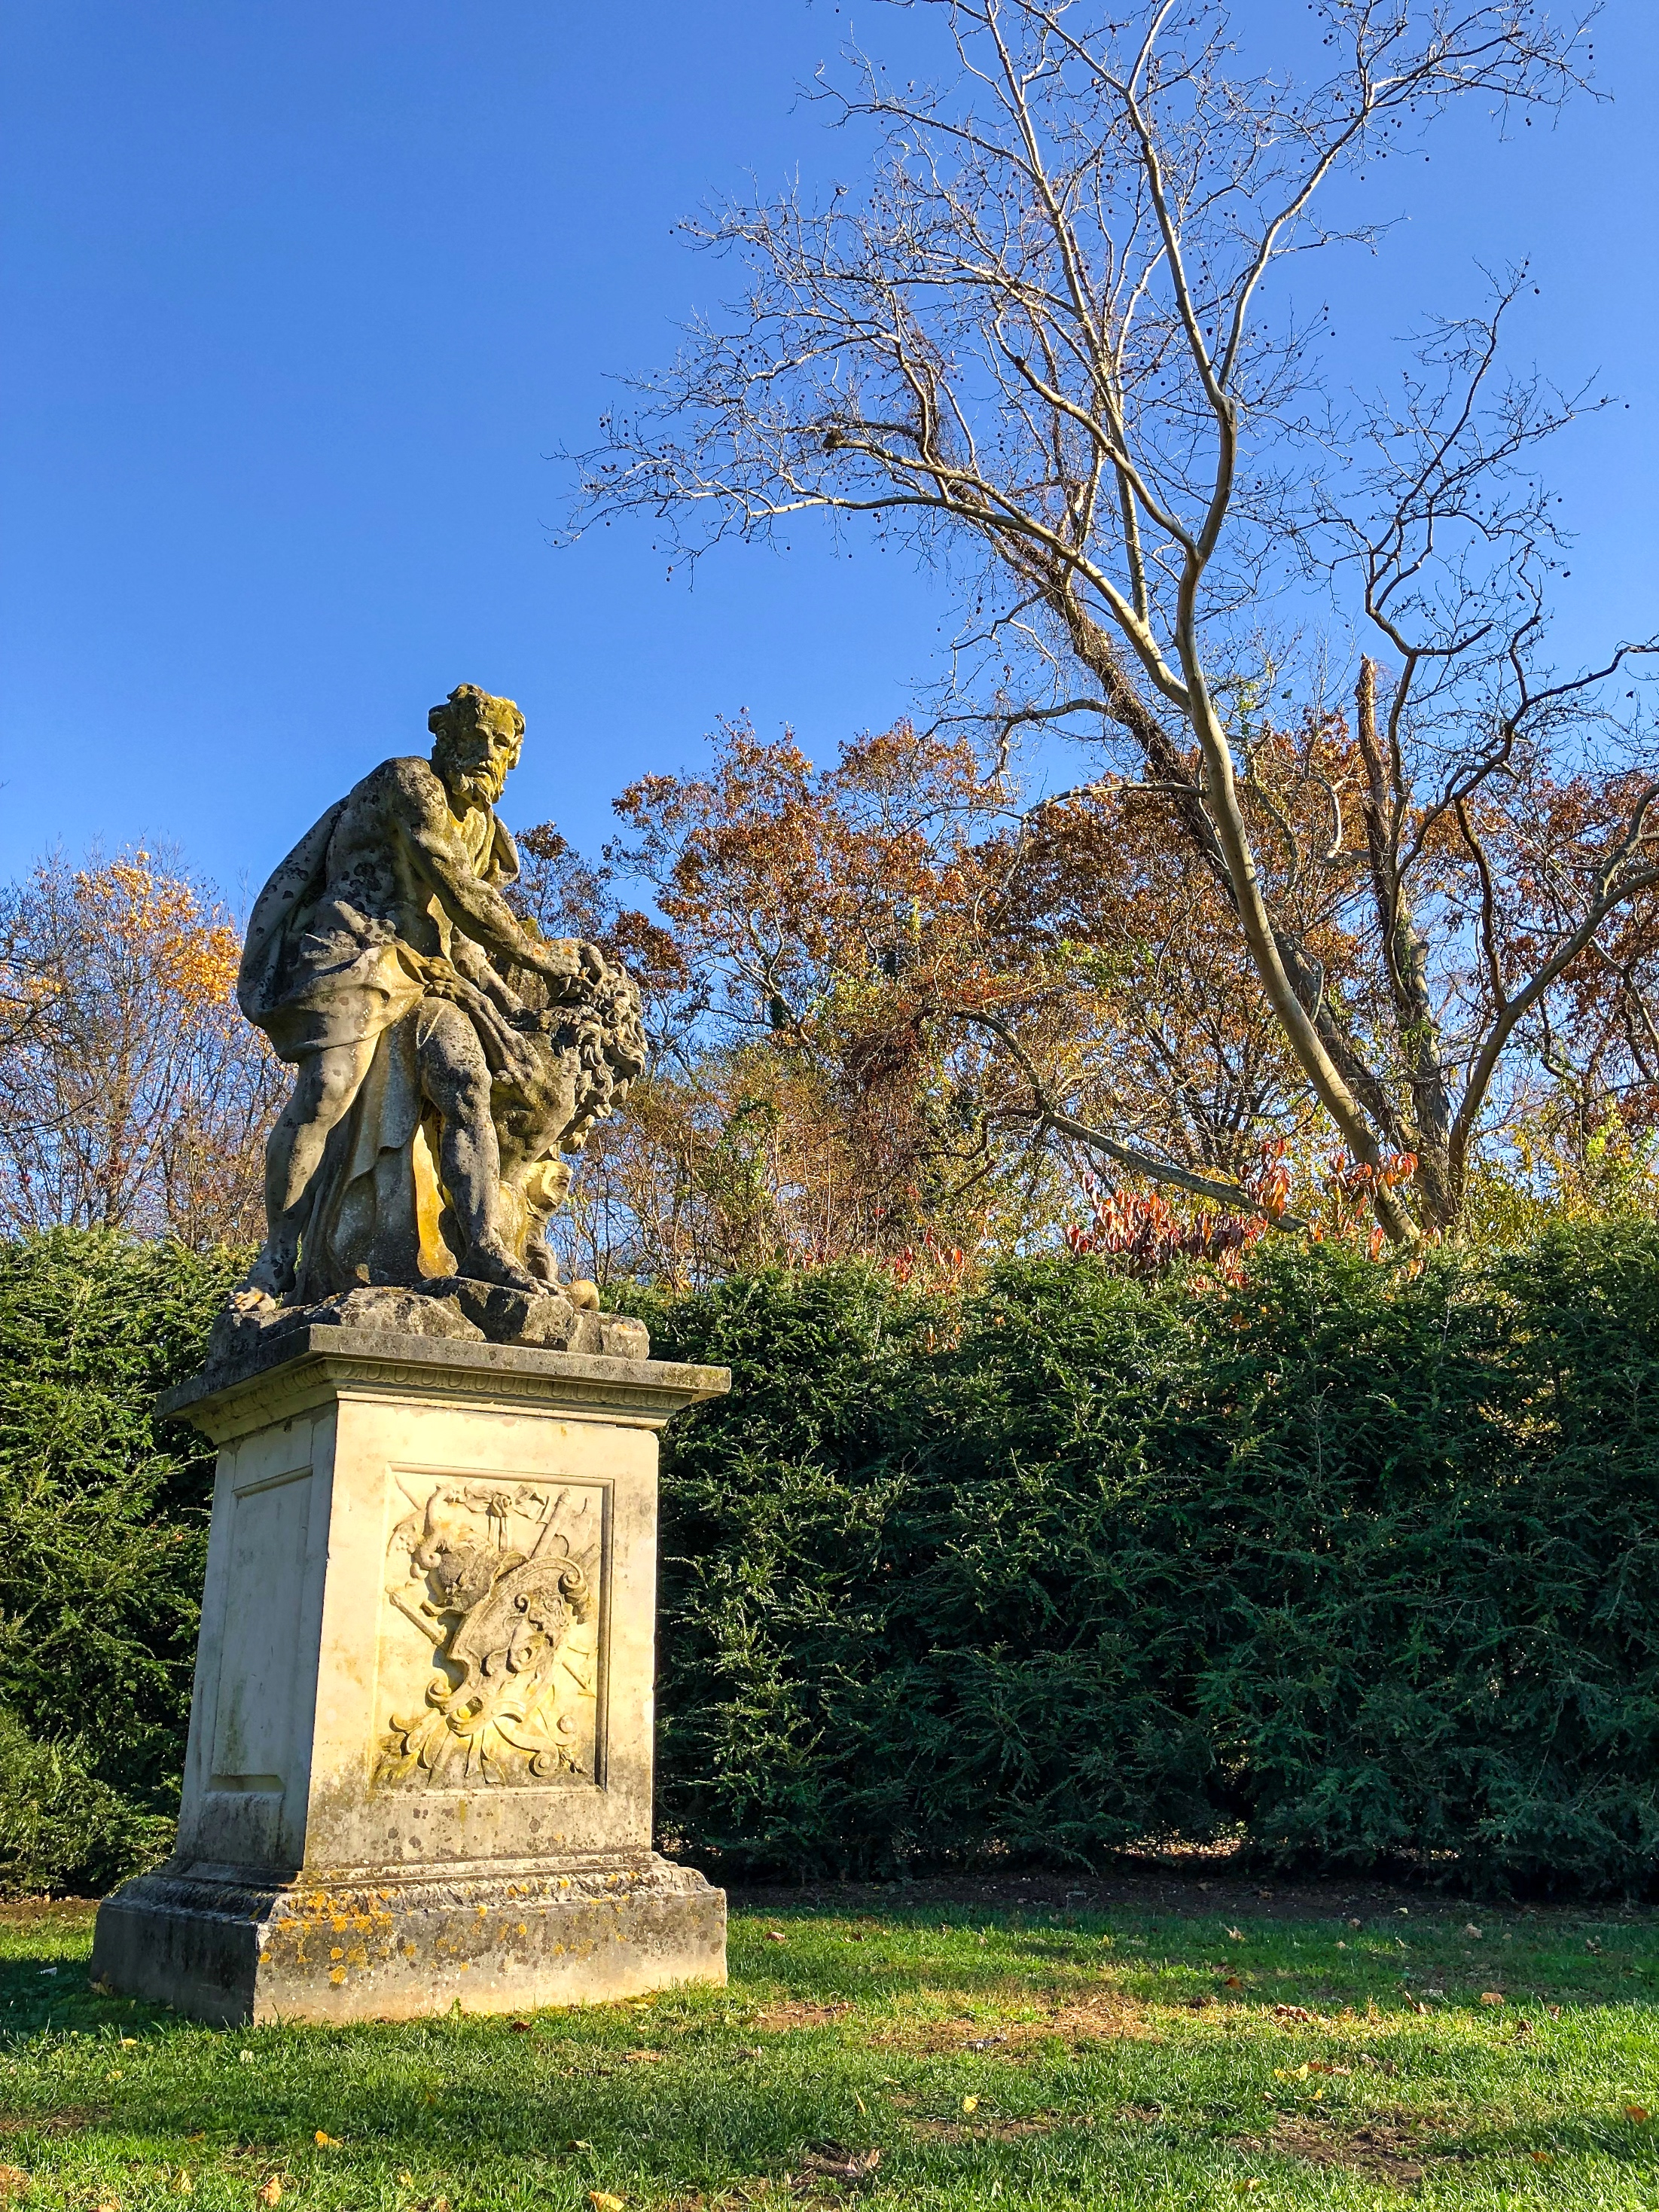 __@ ART-Old man & Lion_Old Westbury Gardens_11.11.18.jpg